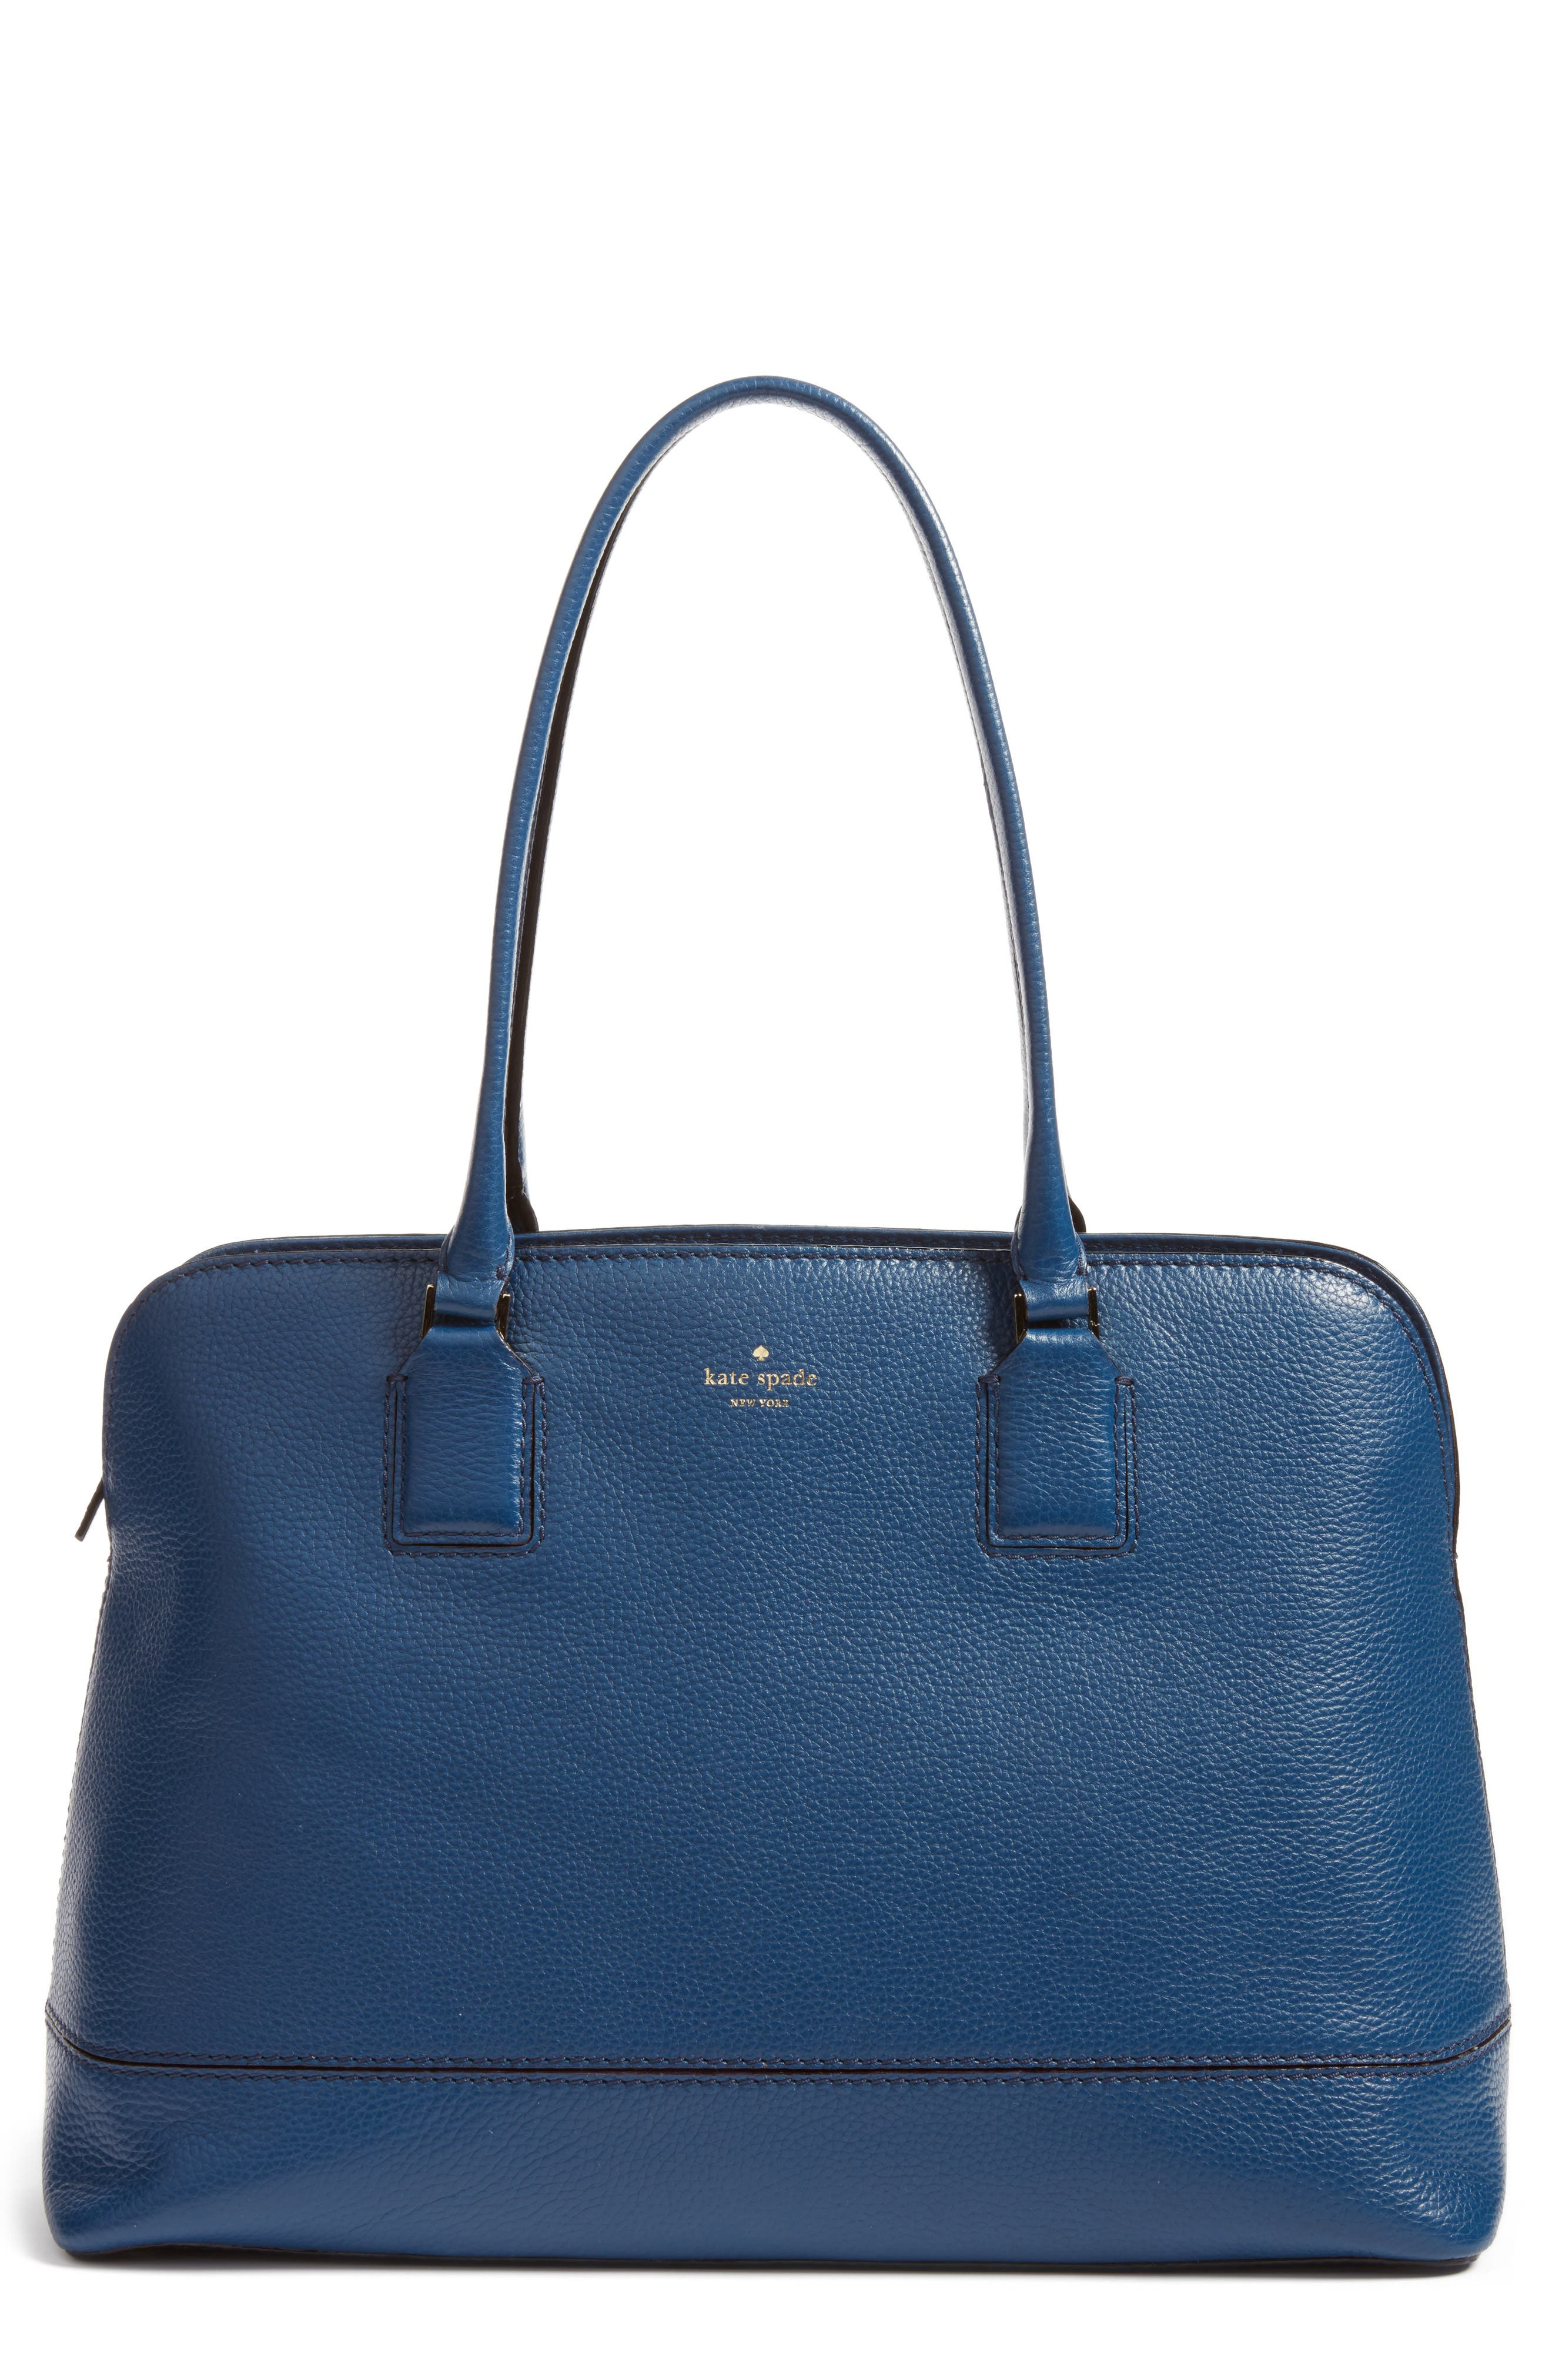 kate spade new york young lane - marybeth leather tote with removable laptop sleeve